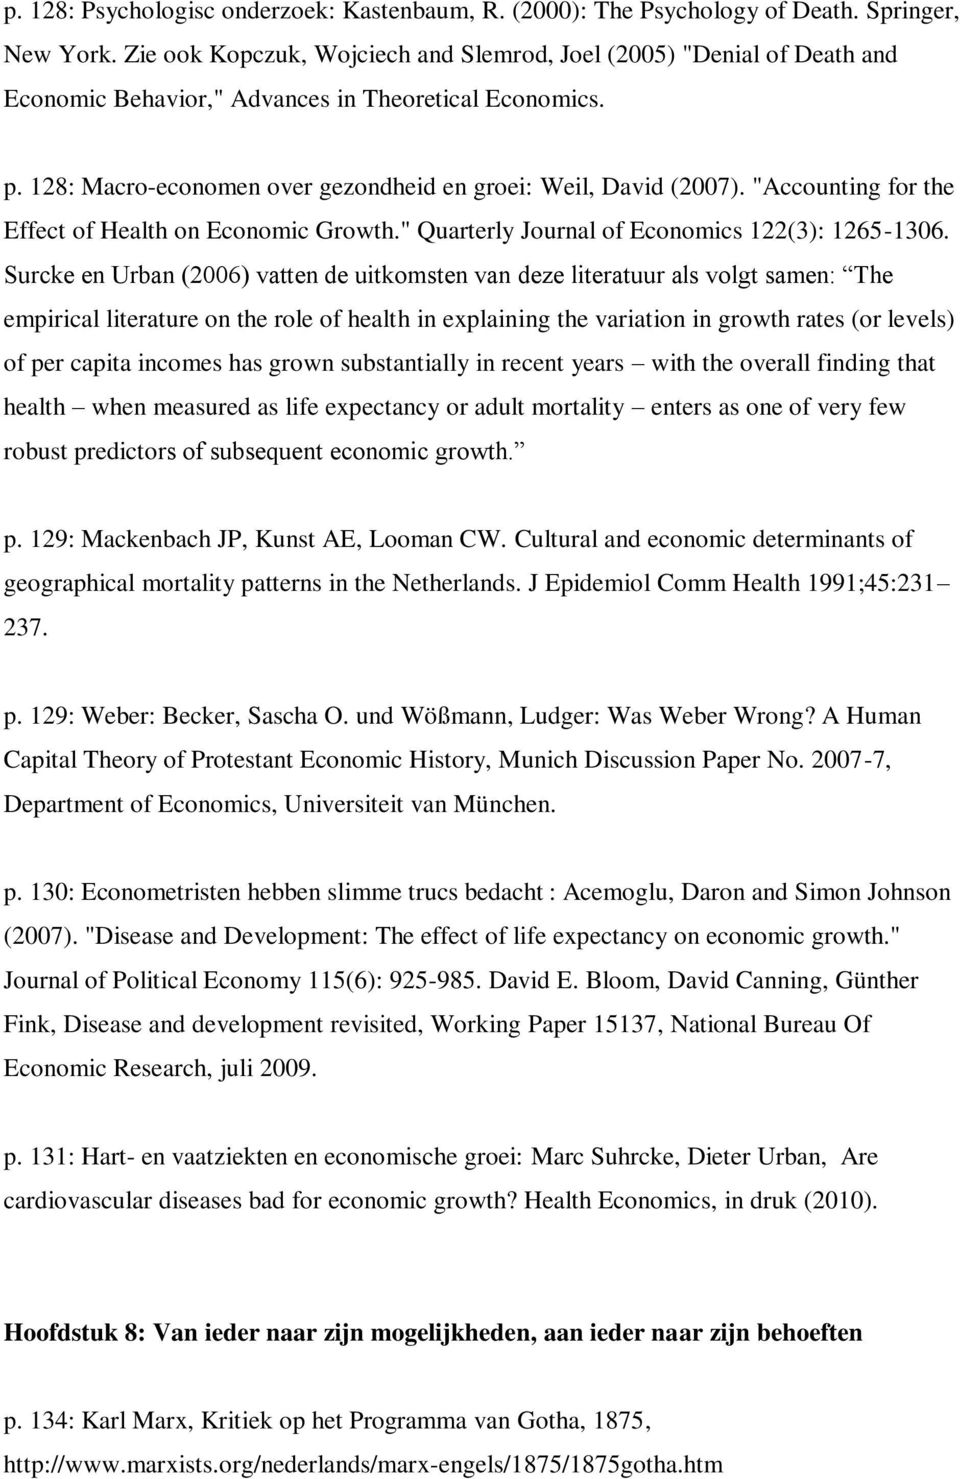 """Accounting for the Effect of Health on Economic Growth."" Quarterly Journal of Economics 122(3): 1265-1306."